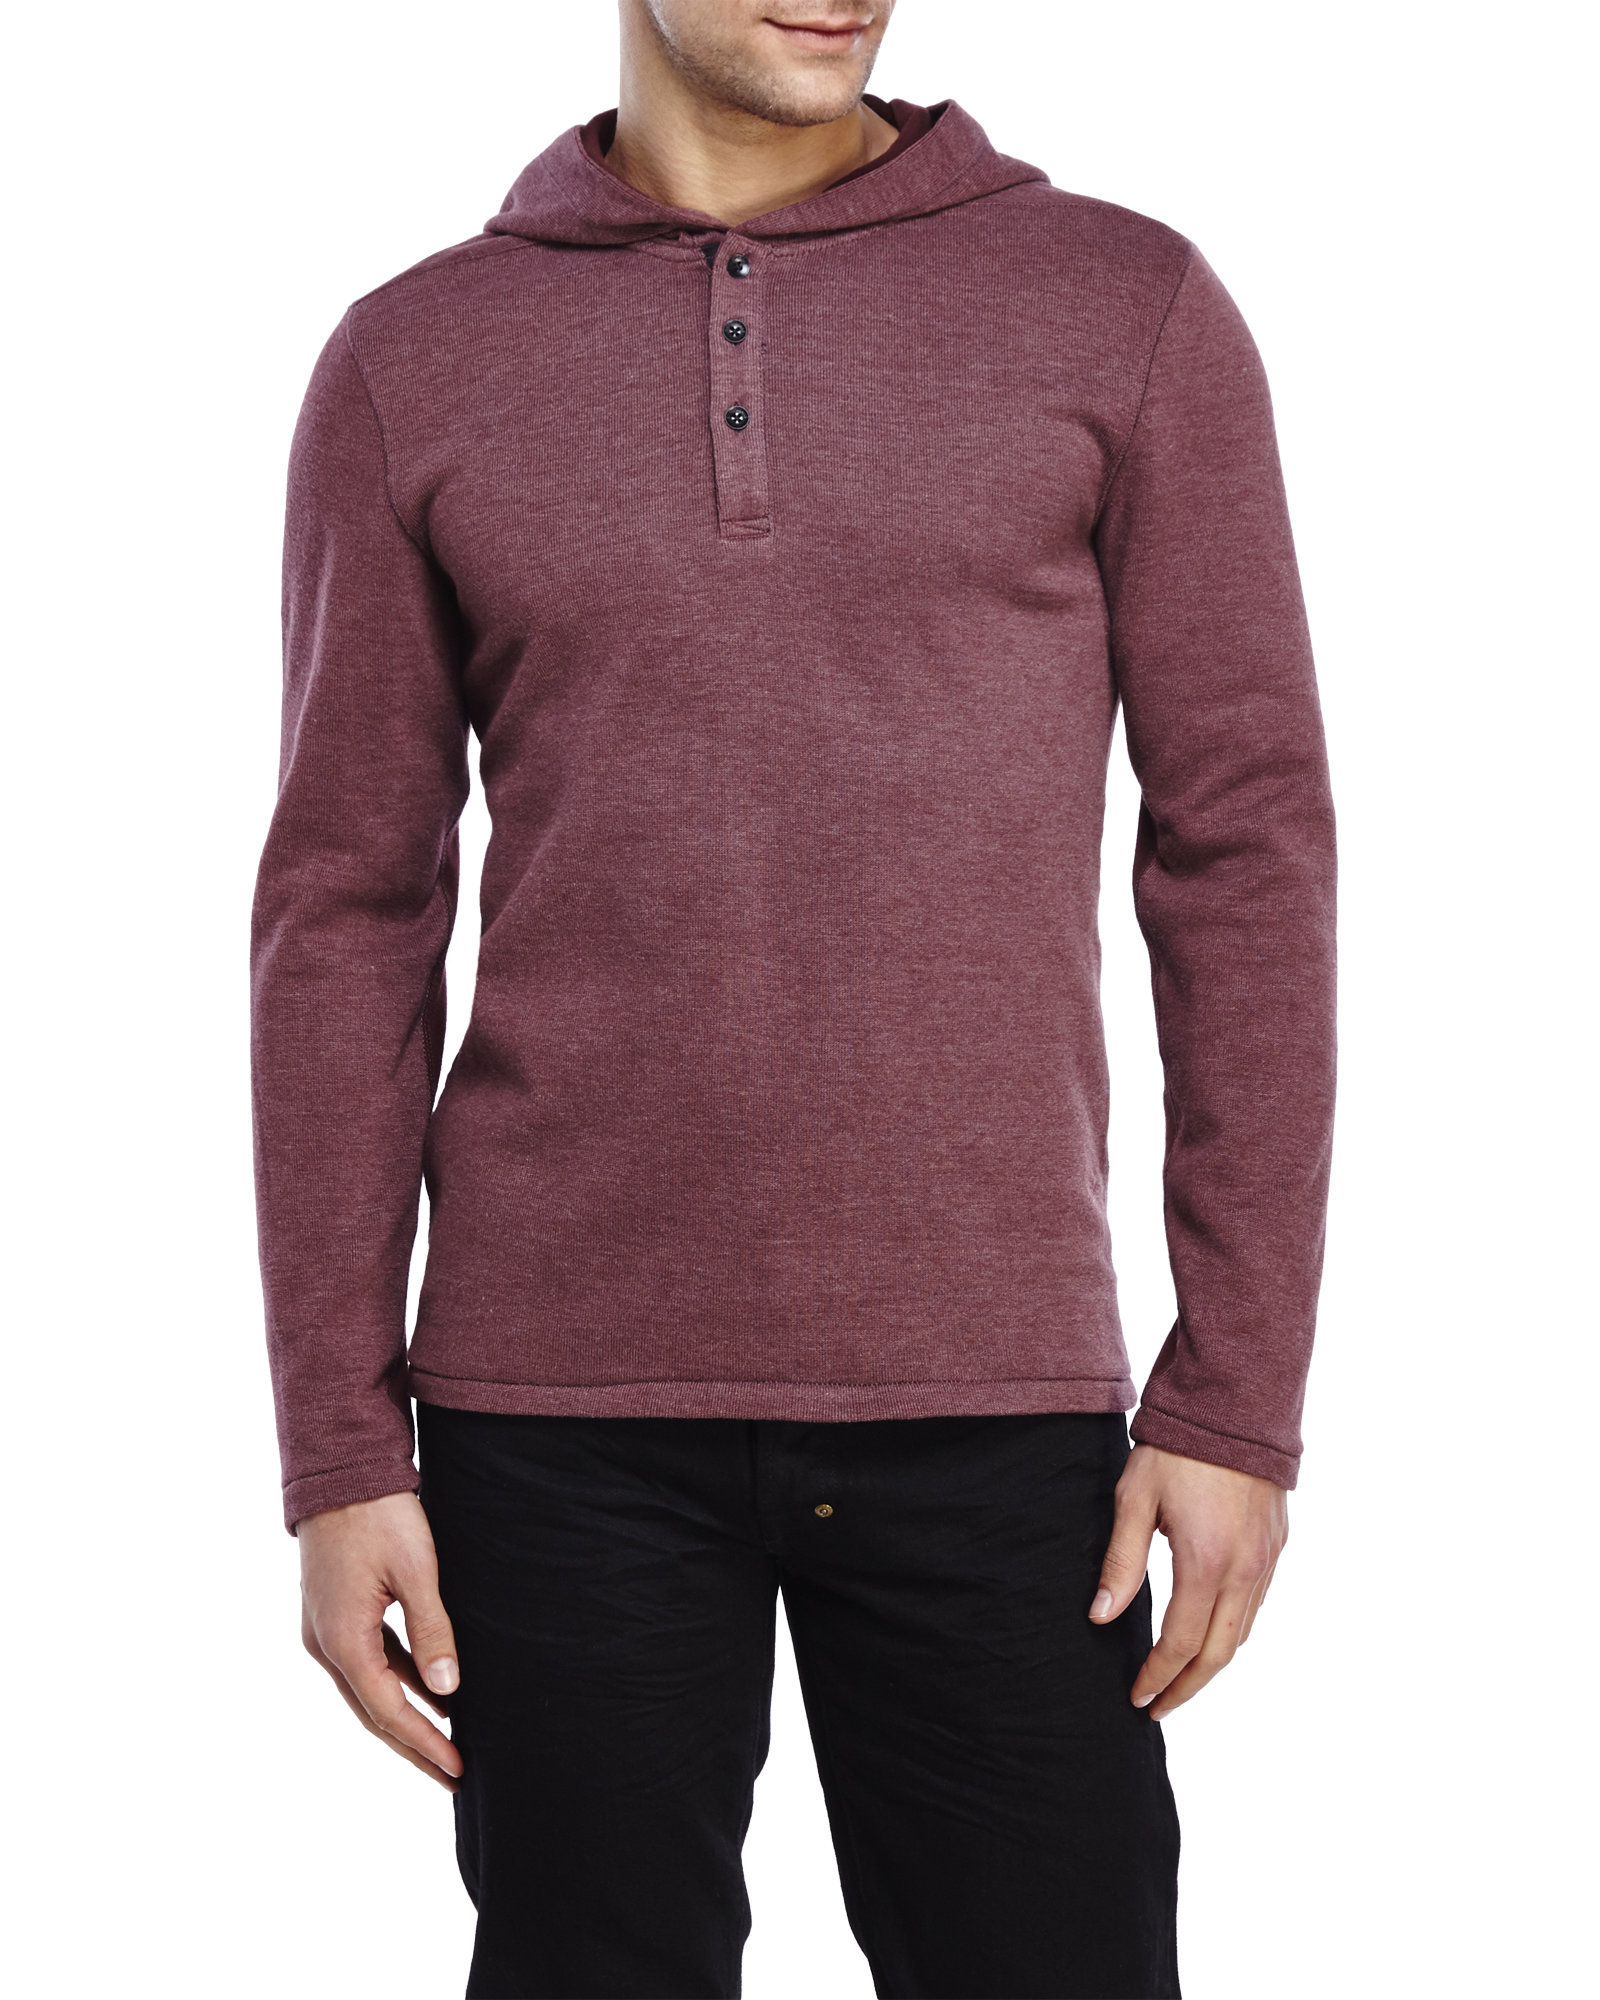 The Henley style was the traditional pullover sweatshirt worn by English rowers. This collarless three-button pullover style has since become a staple for casual wear. Imported.